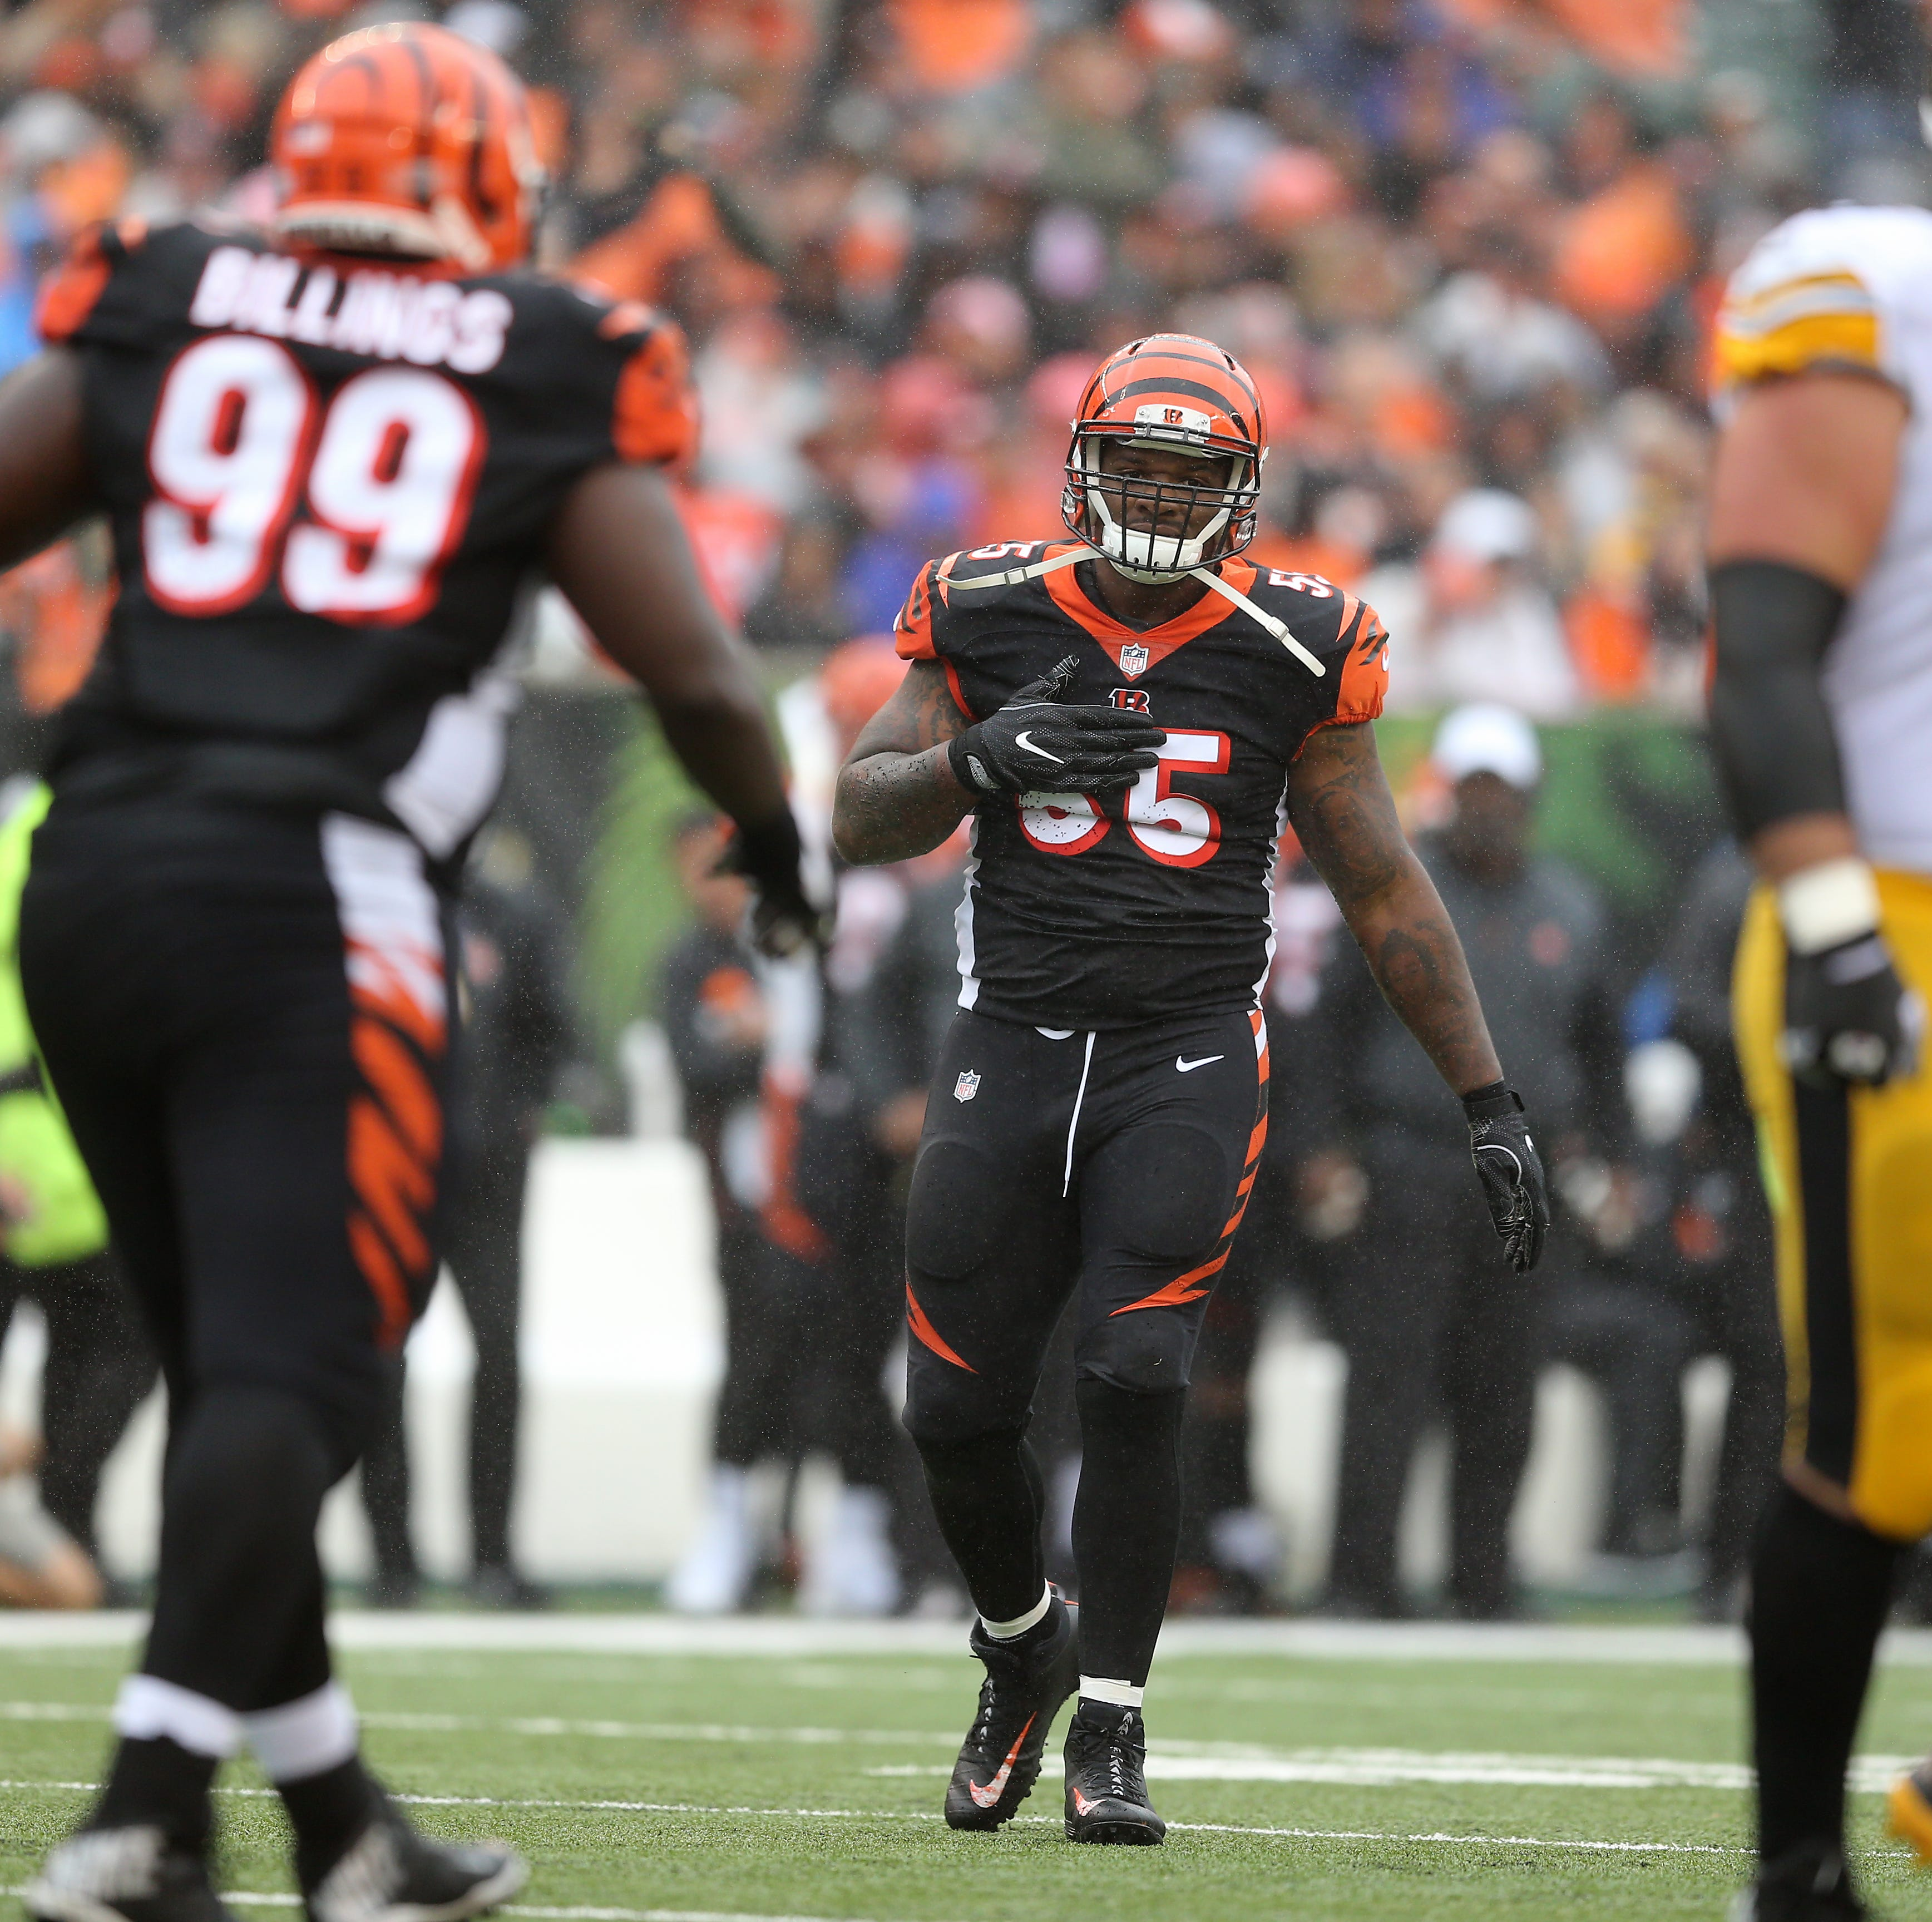 Mark Schlereth: Fine Mike Brown, Marvin Lewis, Bengals for Vontaze Burfict's play